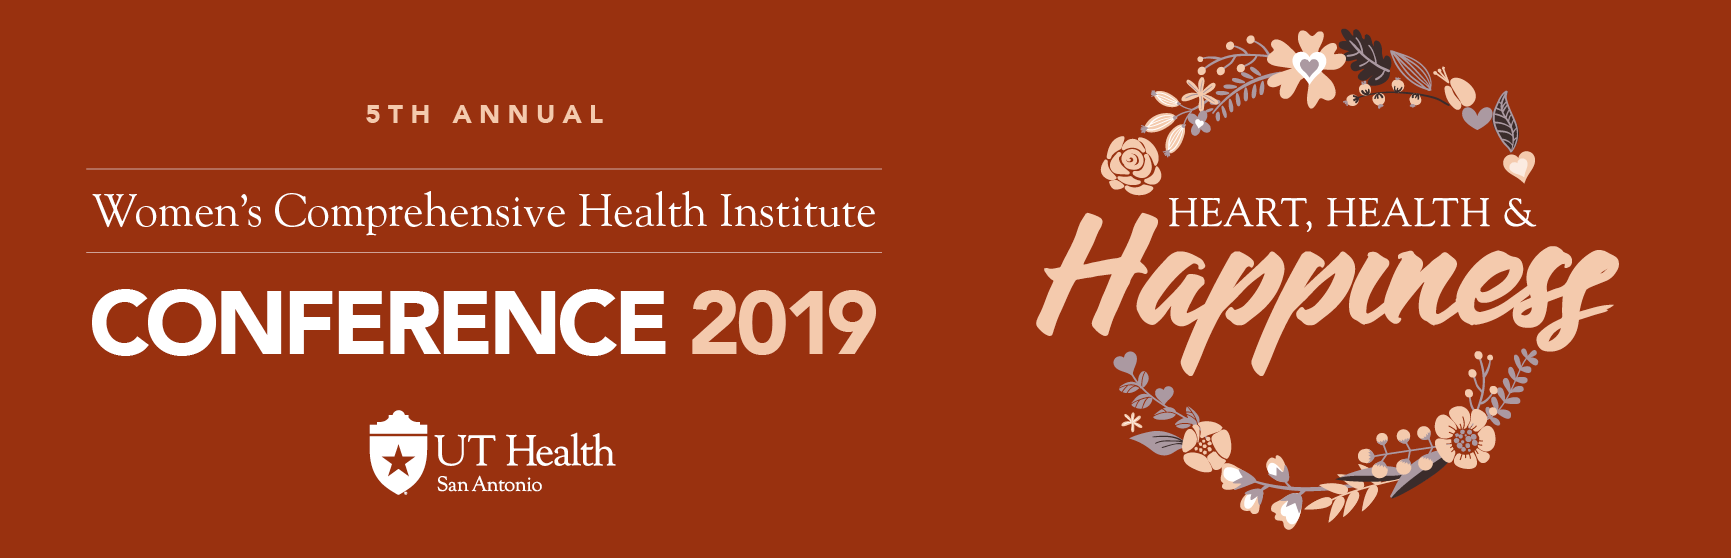 Women's Conference 2019 UT Health